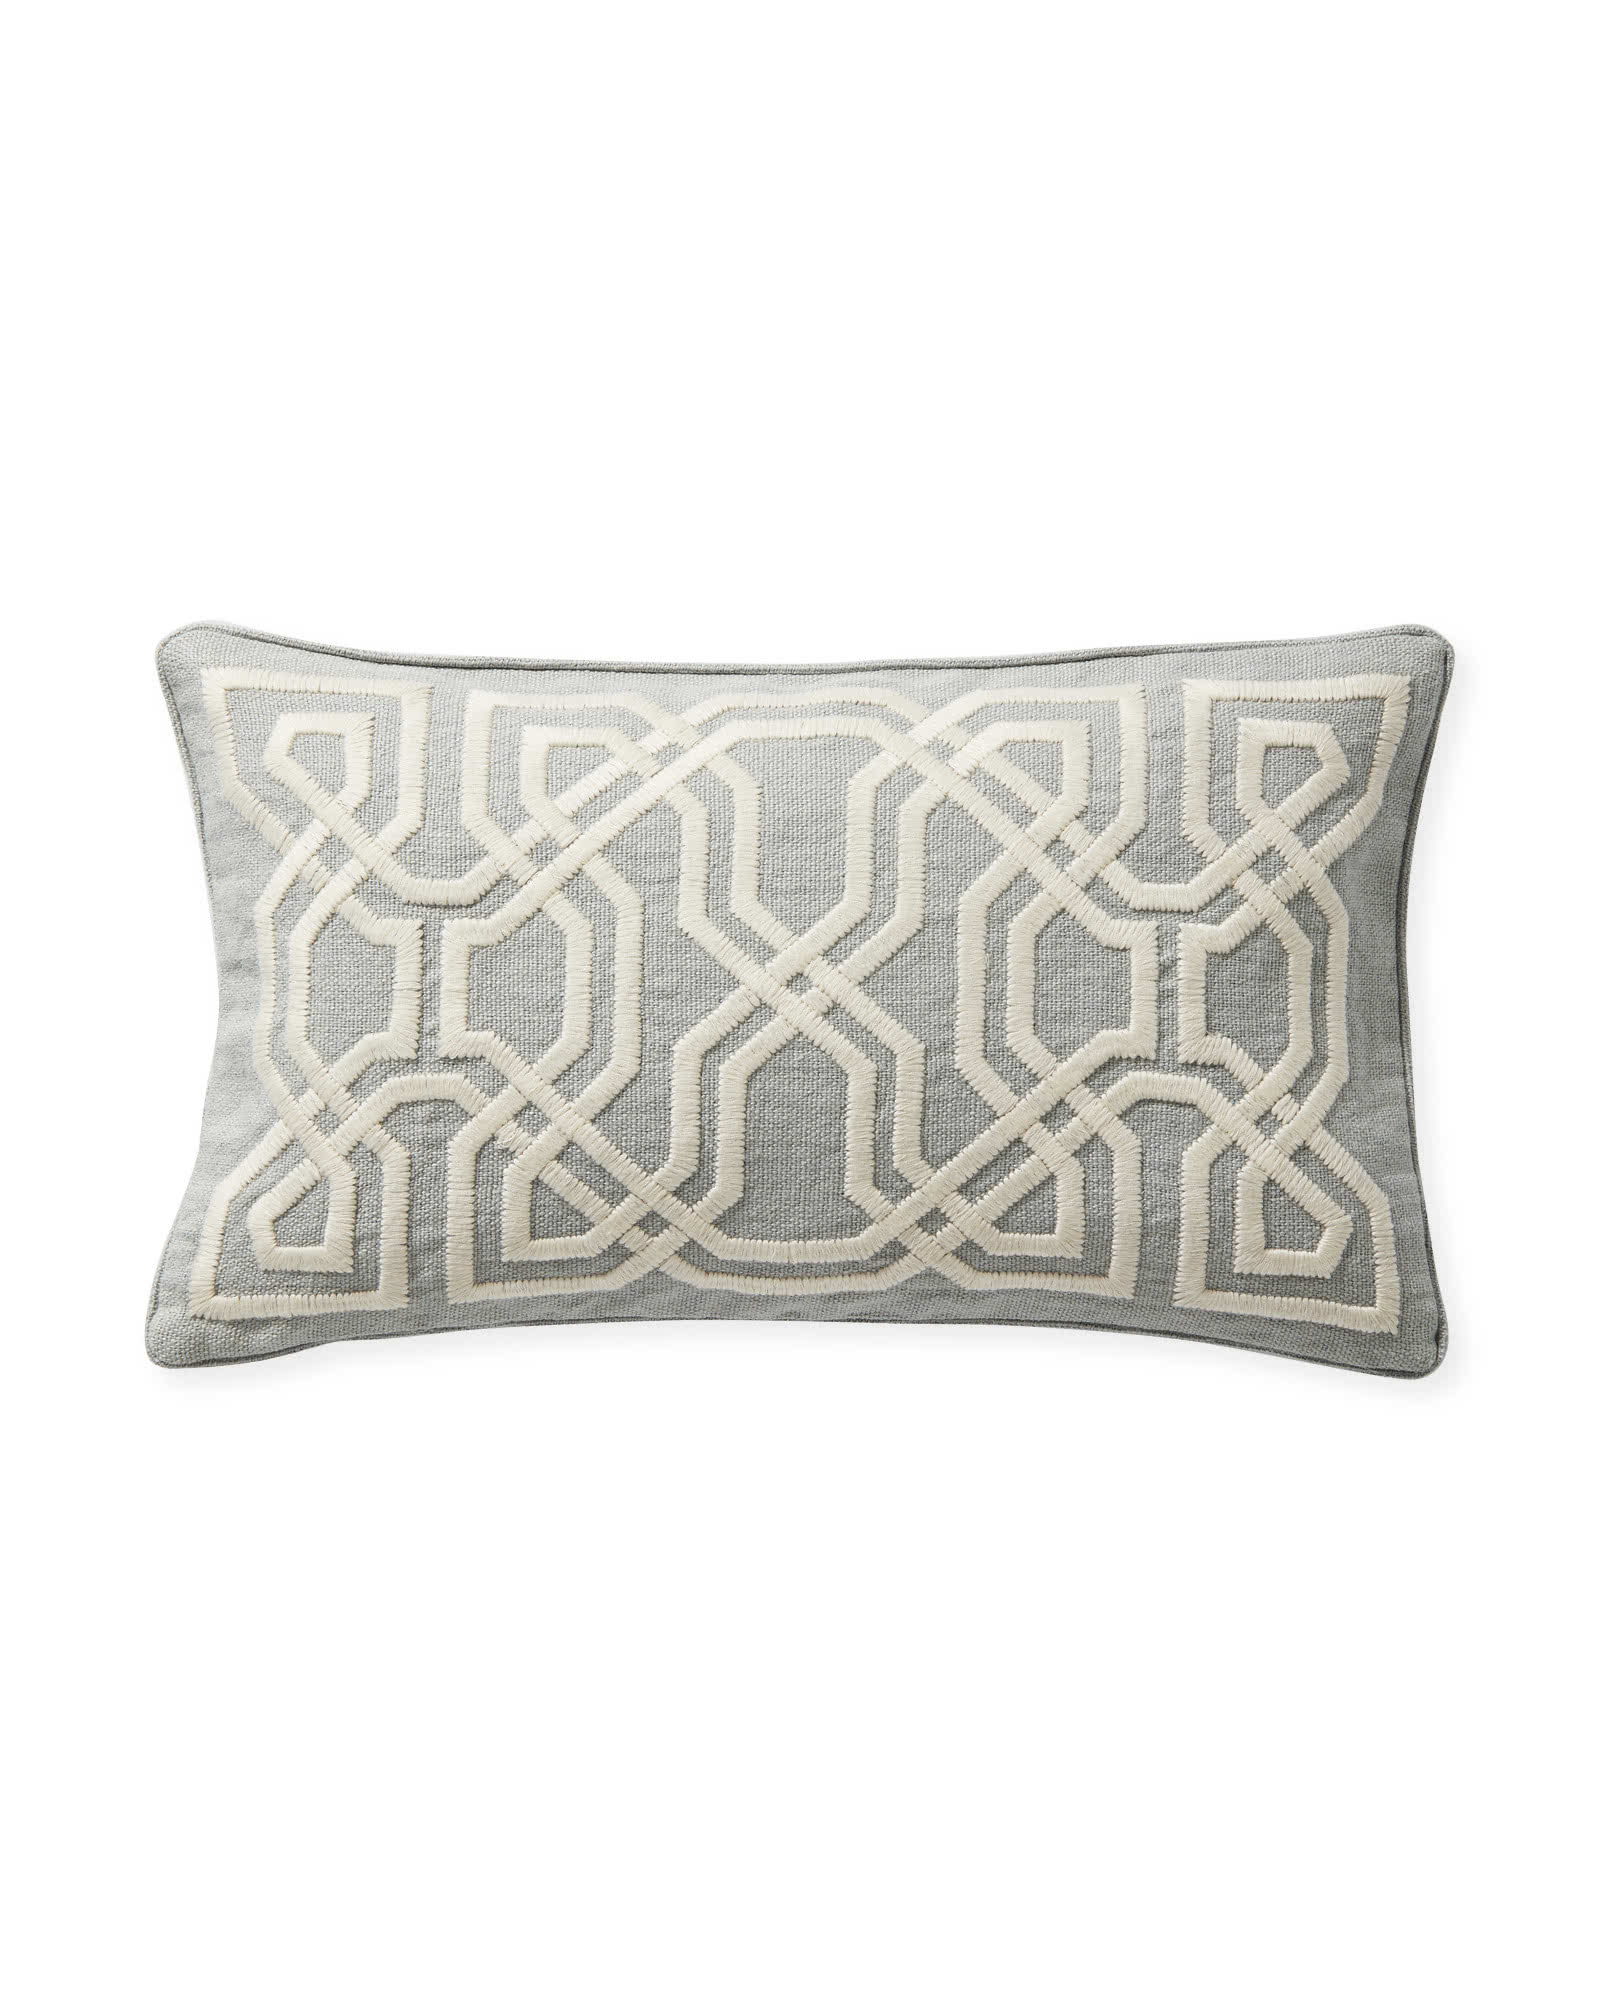 Jetty Pillow Cover - Smoke,